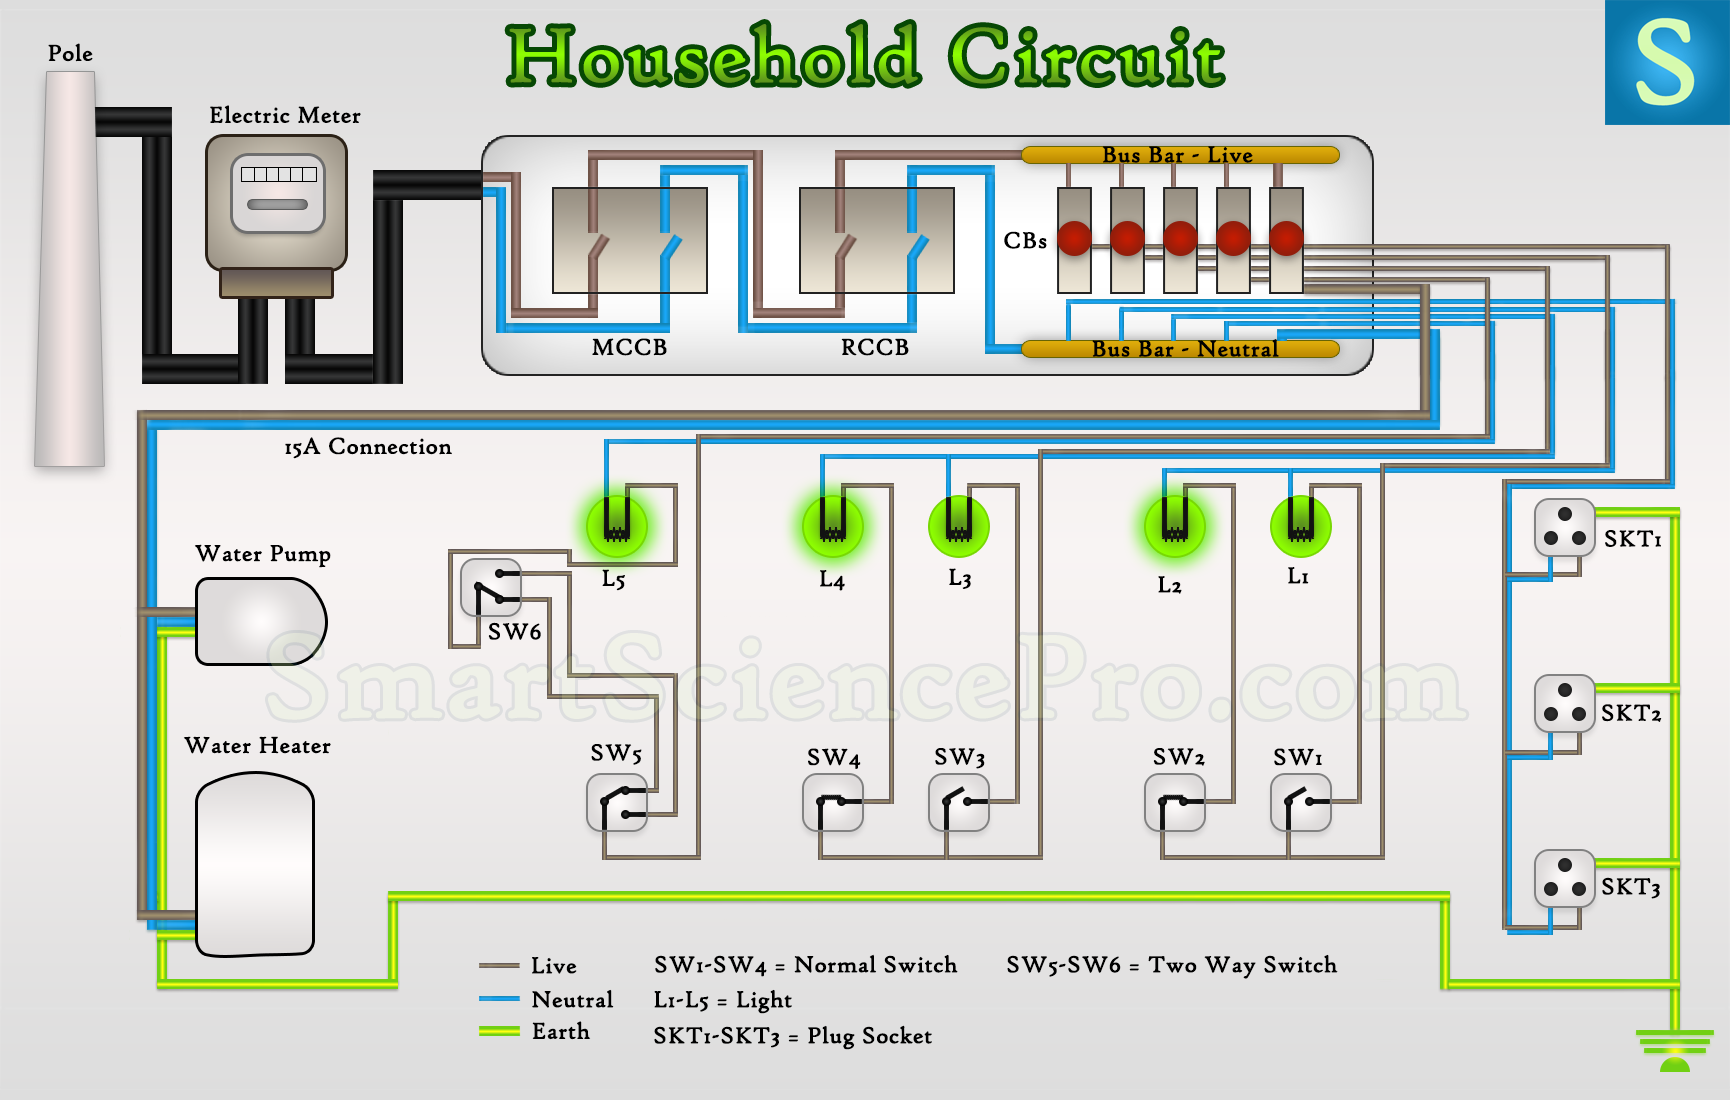 Basic Electrical Parts Components Of House Wiring Circuits Ssp Double Gang Switch Diagram How Form The Household Circuit